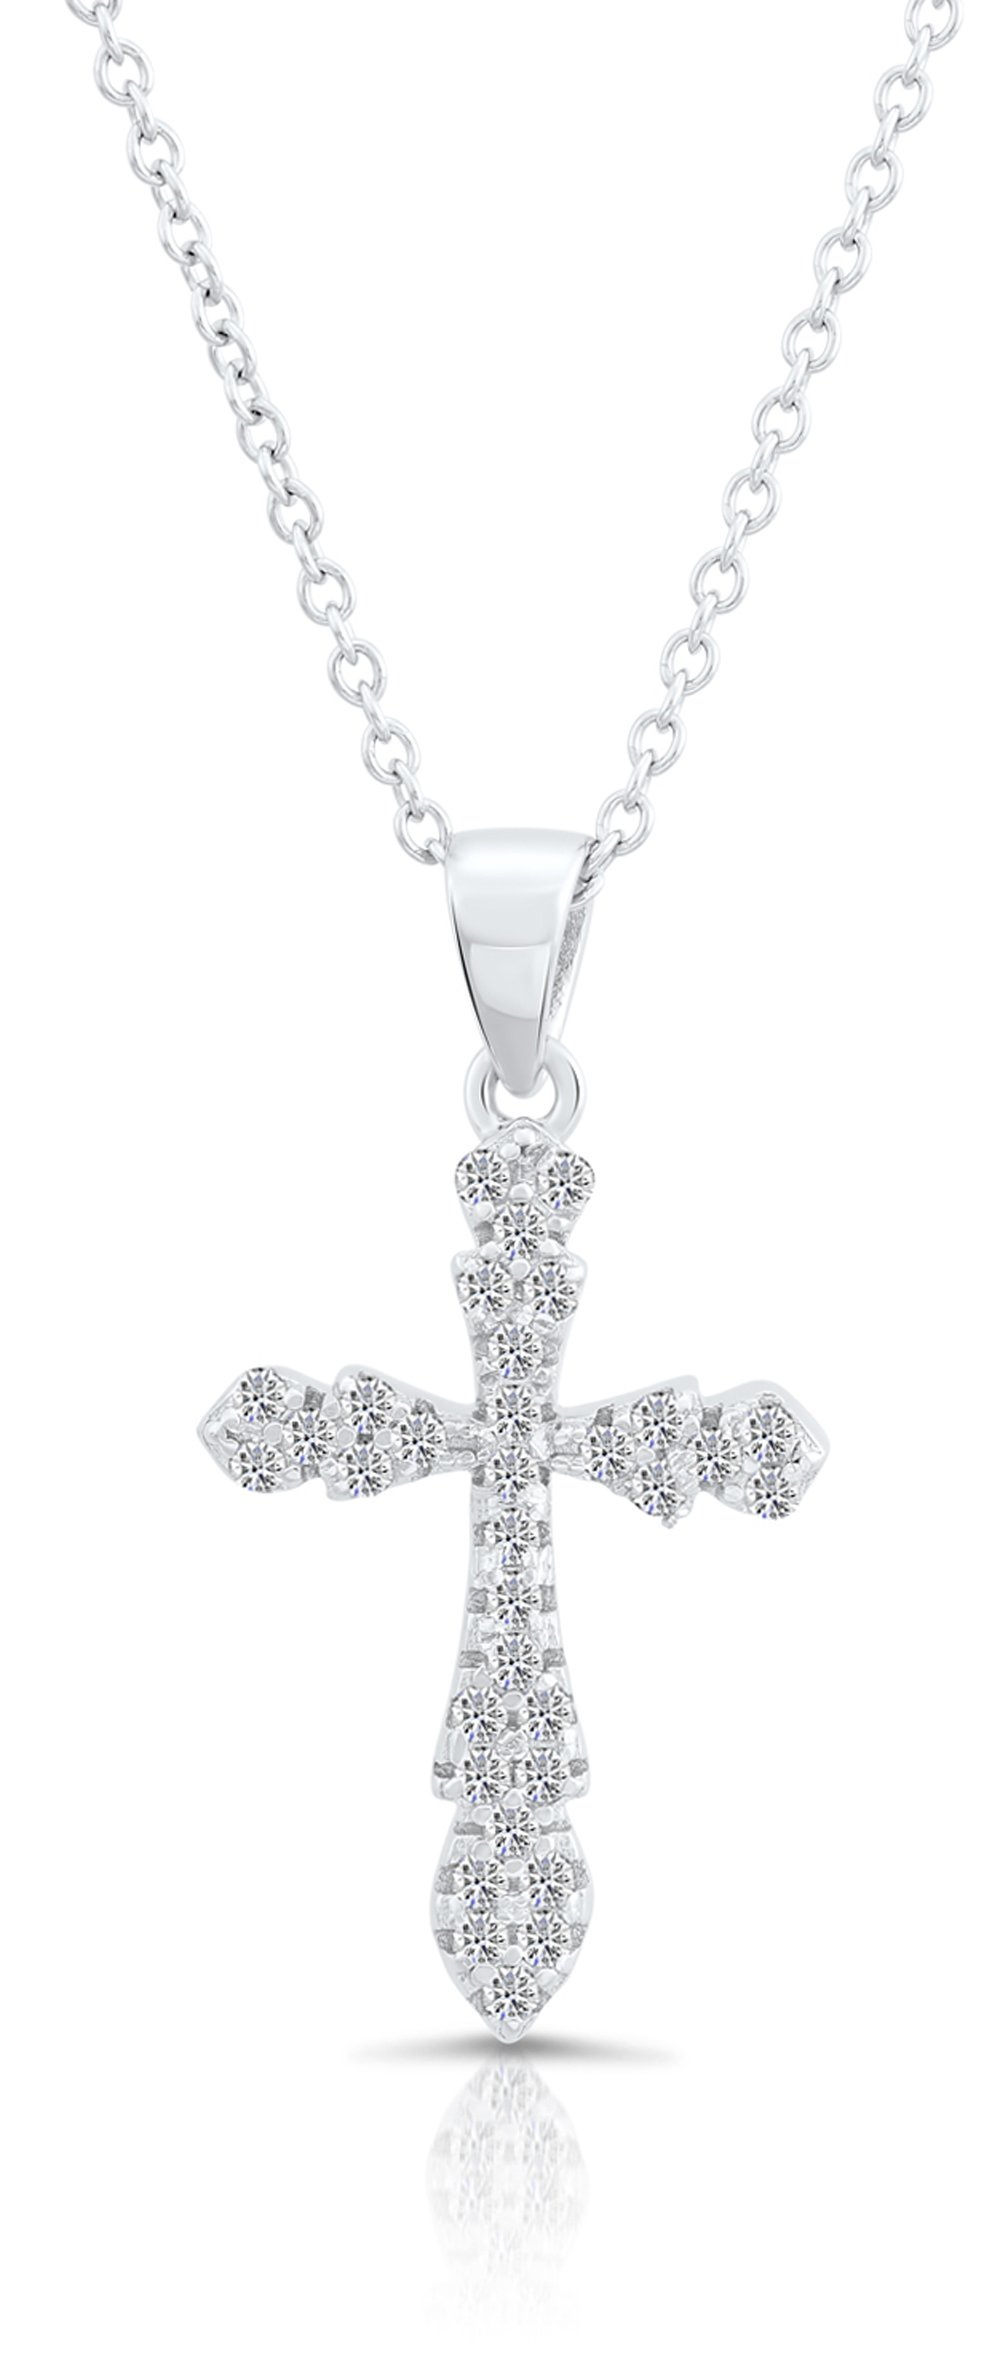 Gold Plated Sterling Silver Cubic Zirconia CZ Curved Cross Charm Pendant Necklace